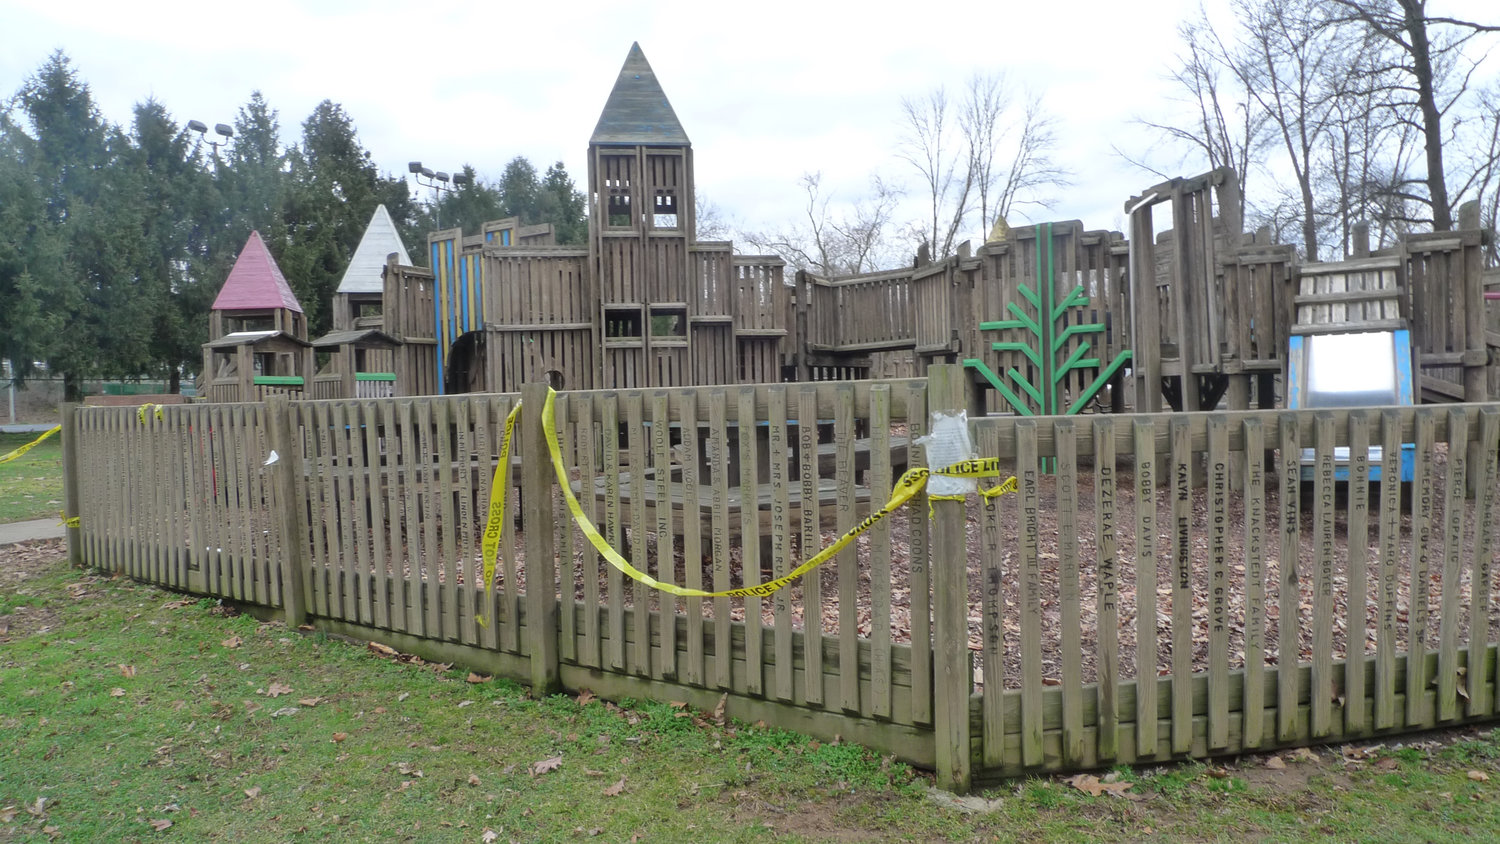 The Kids Kastle playground in Hoffer Park has been closed since June 4, 2018. Middletown Borough Council plans to apply for a state grant to help fund a replacement.